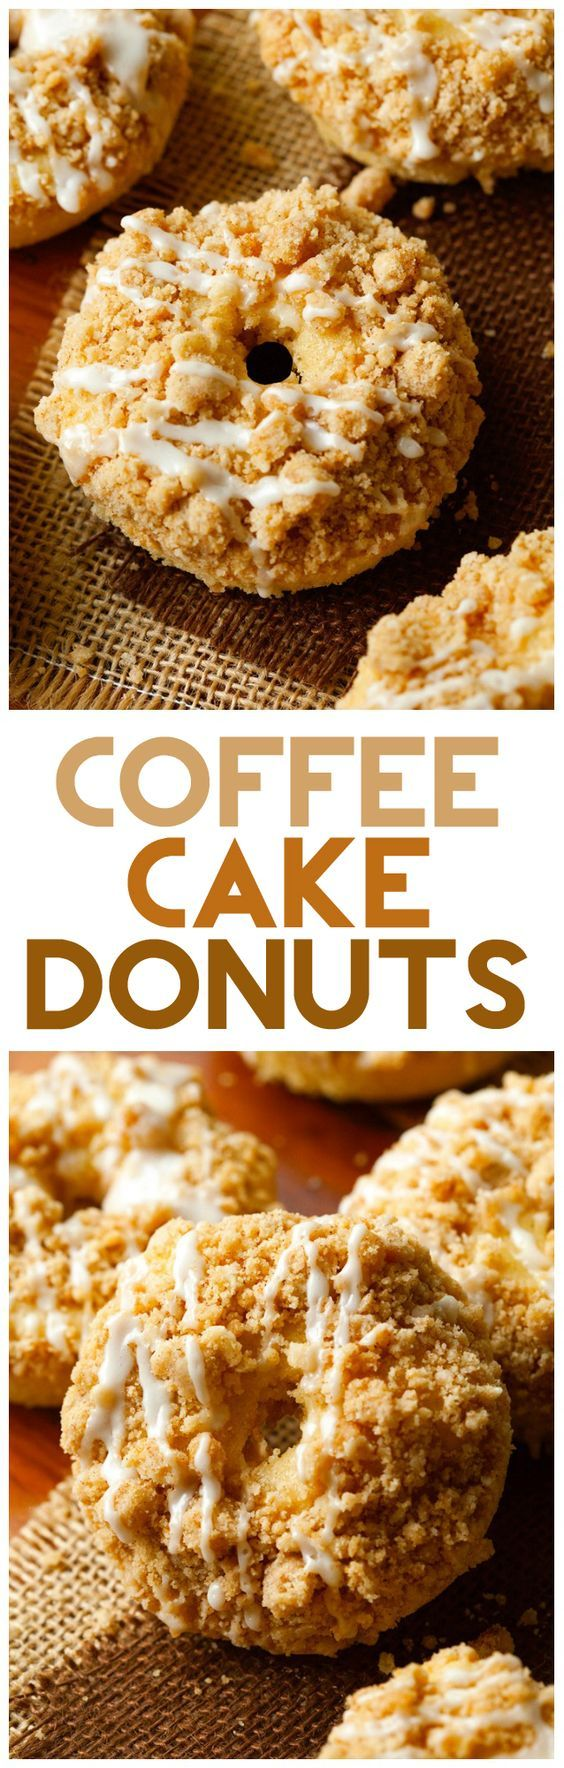 Coffee Cake Donuts - A delicious crumb topping and glaze top this delicious donut... what's not to love? | Chef in Training